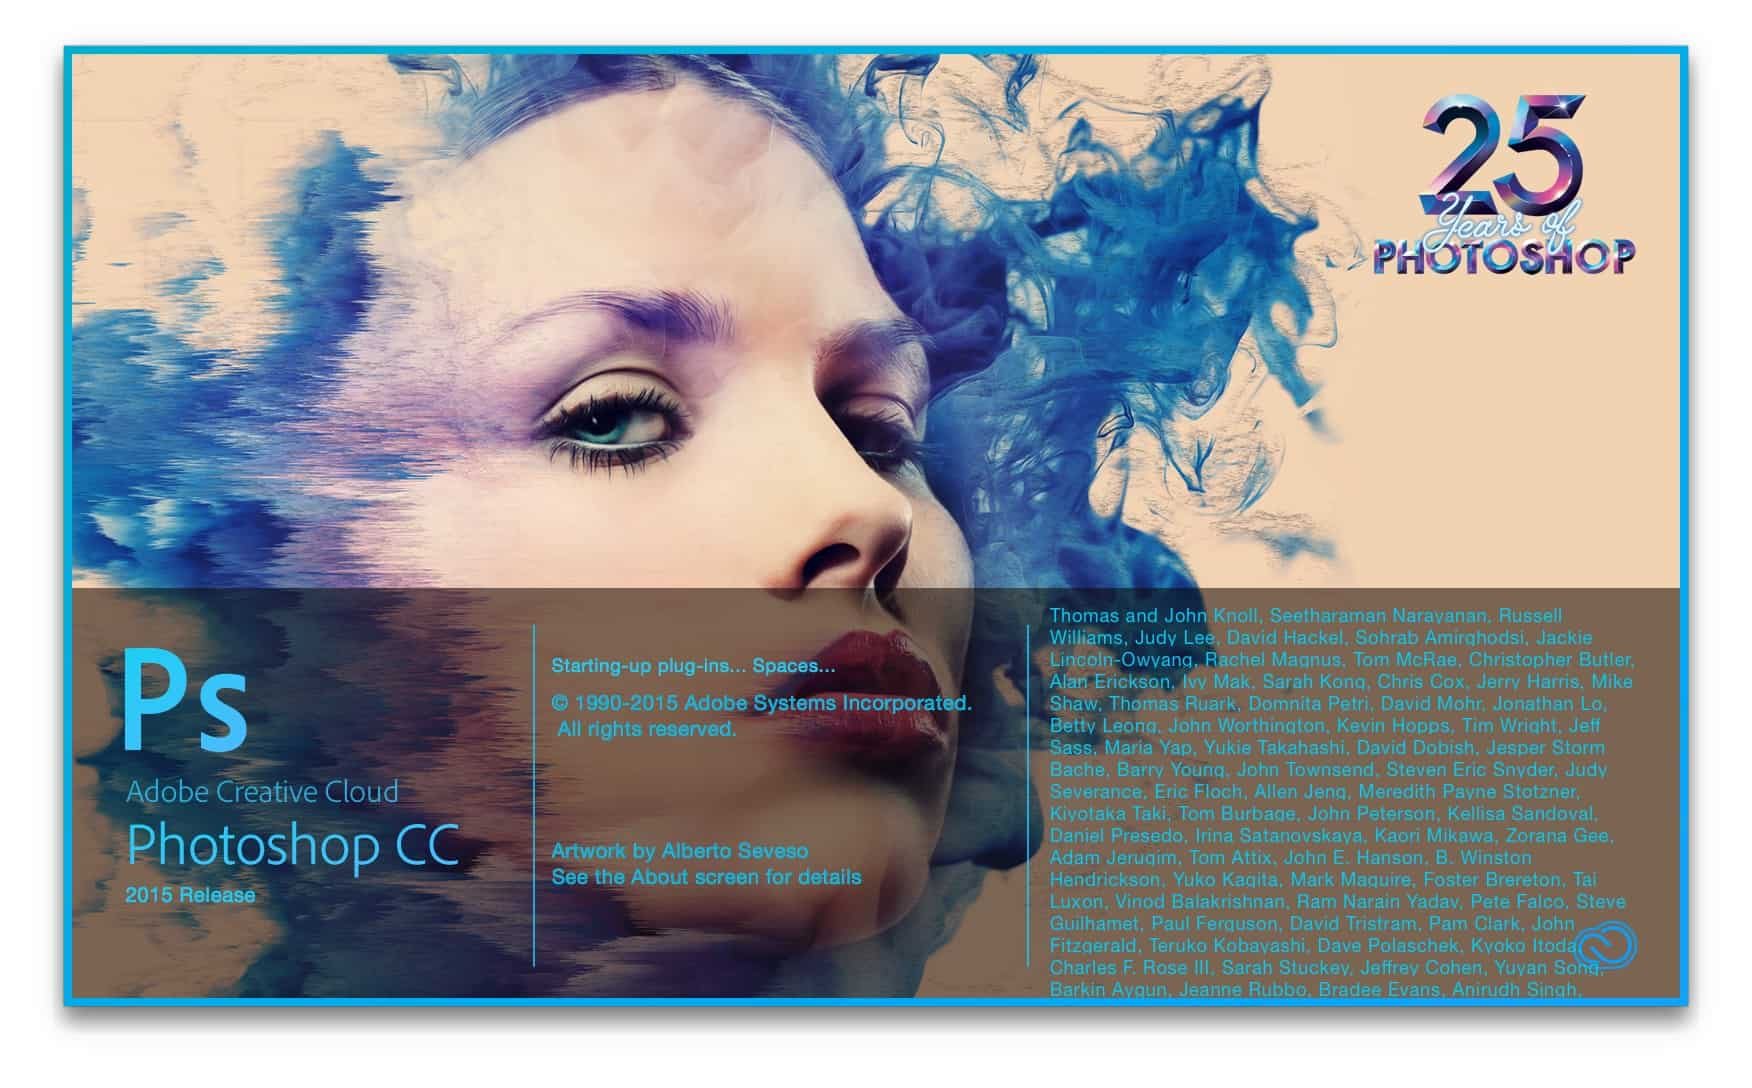 adobe photoshop cc without creative cloud